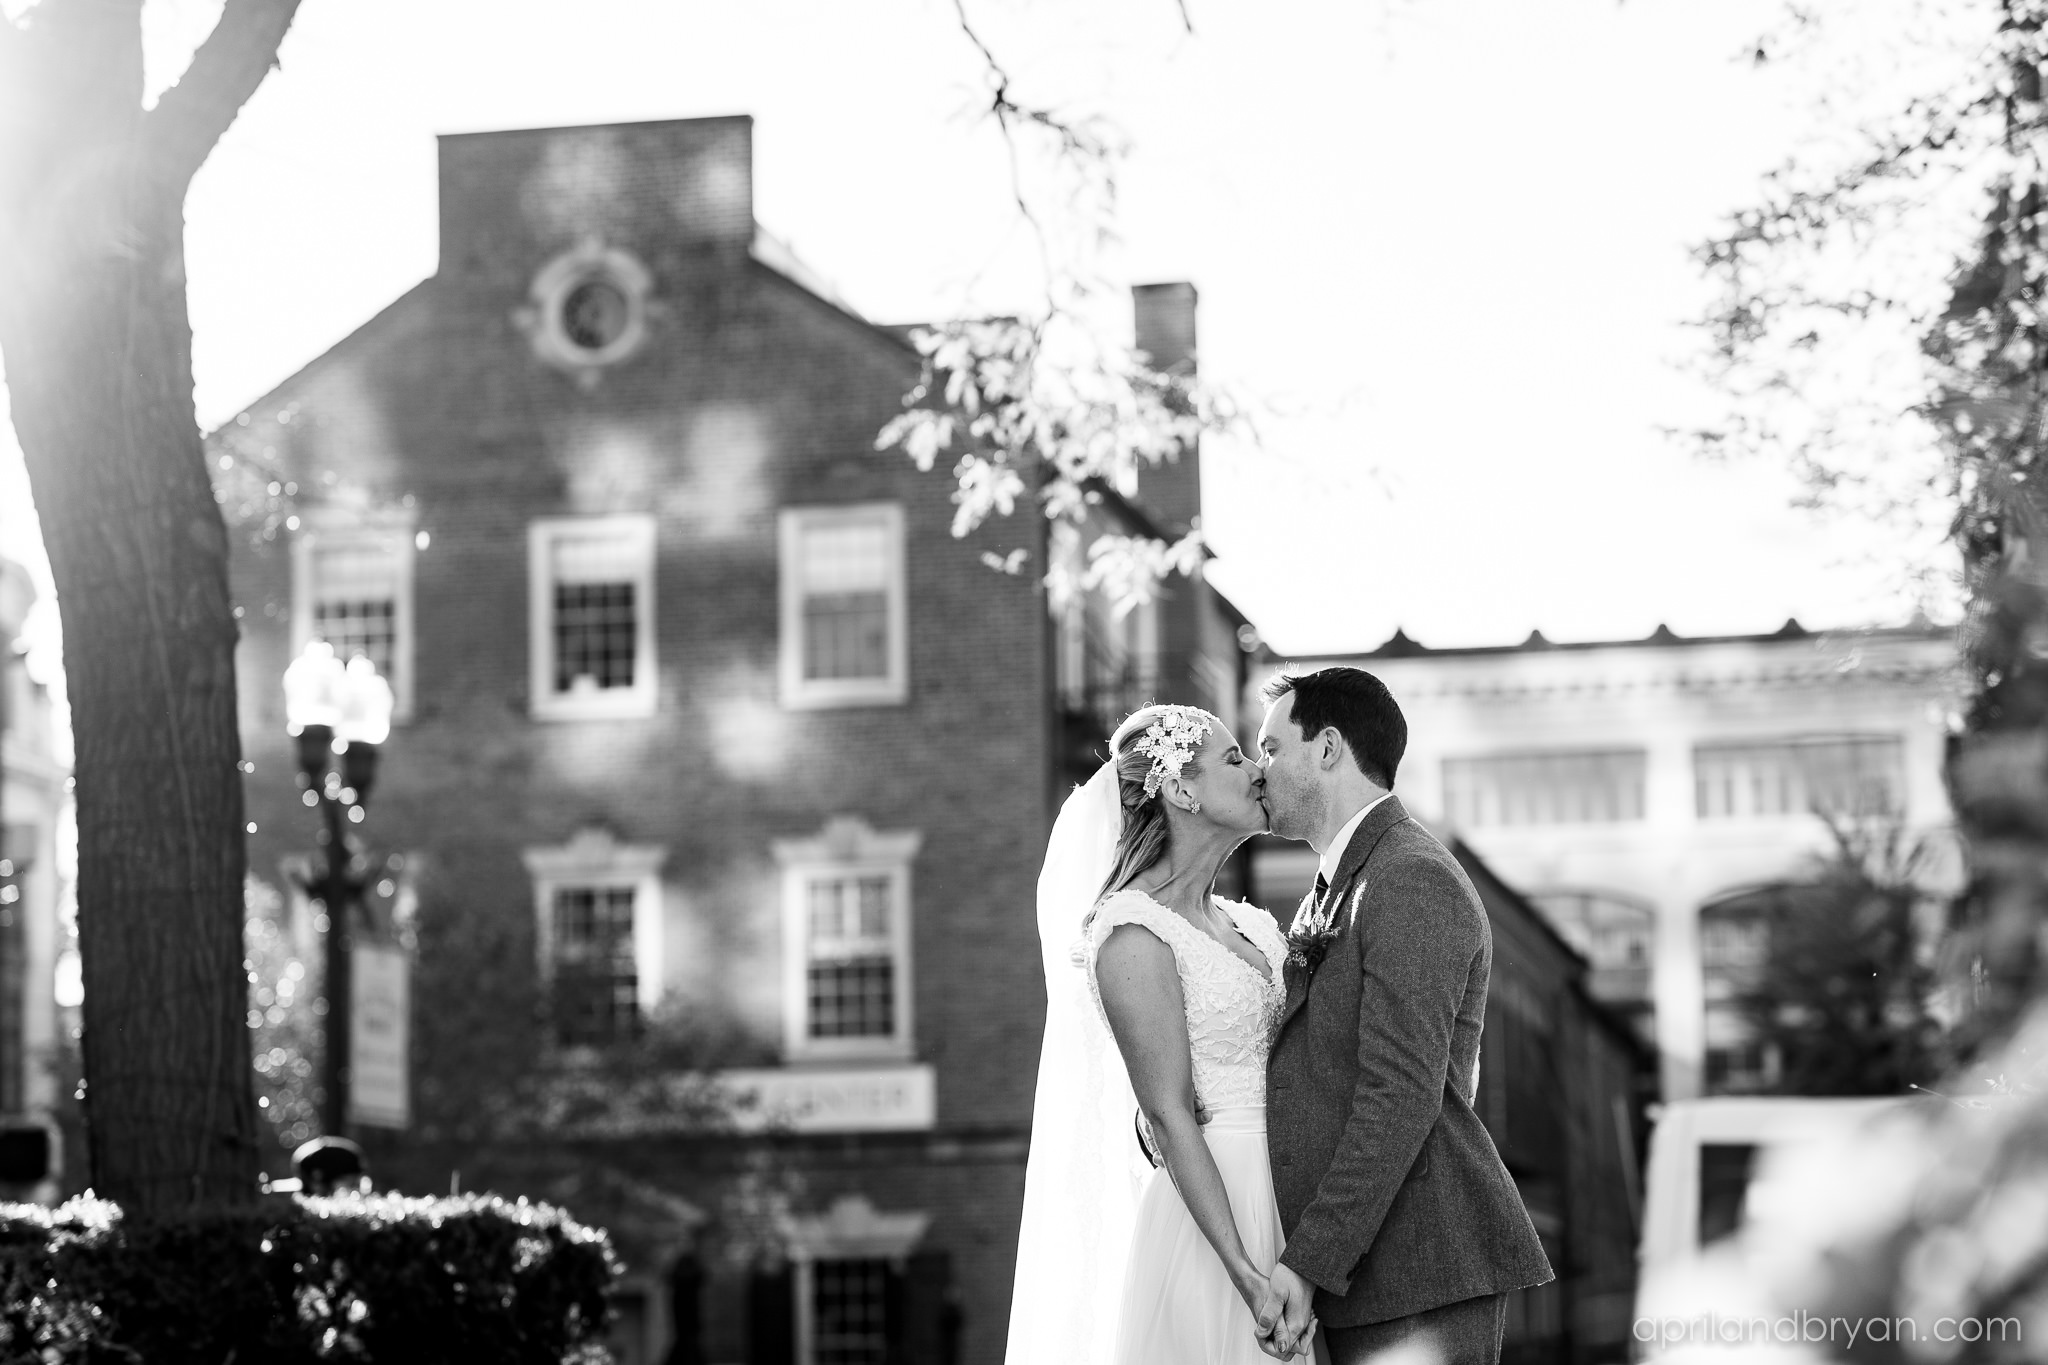 A picture gleaming with classic romantic feel. Nicholas and Rebecca Fasnacht tie the not at Tellus360 on November 1, 2019. Captured by April & Bryan Photography and featured on Dream Weddings.